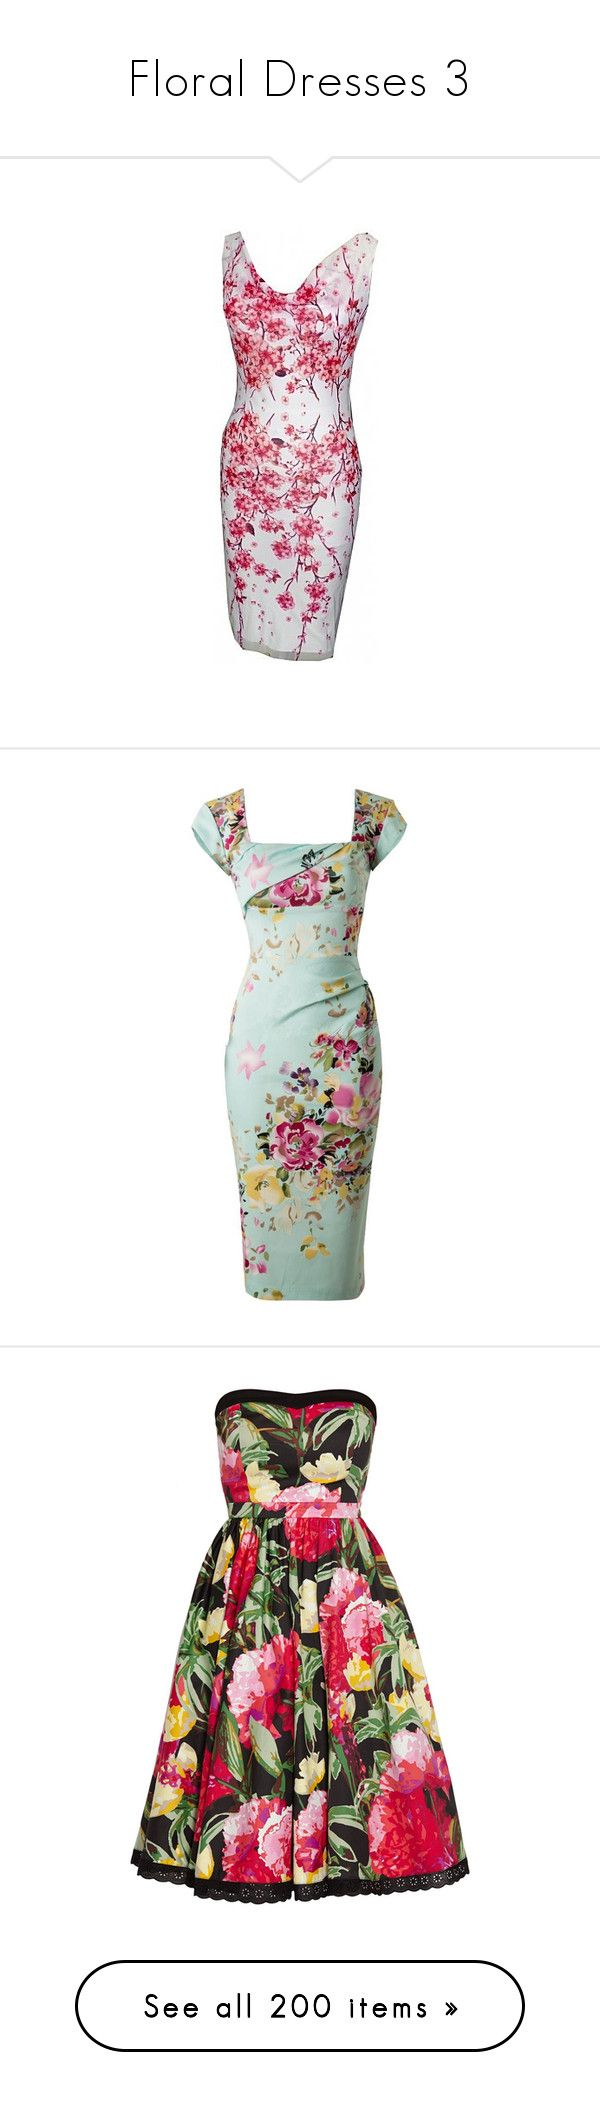 """""""Floral Dresses 3"""" by franceseattle ❤ liked on Polyvore featuring dresses, multiple colors, multi colored dress, lining sleeveless dress, cherry blossom print dress, pink dress, cowl dress, flower printed dress, green floral print dress and mint floral dress"""